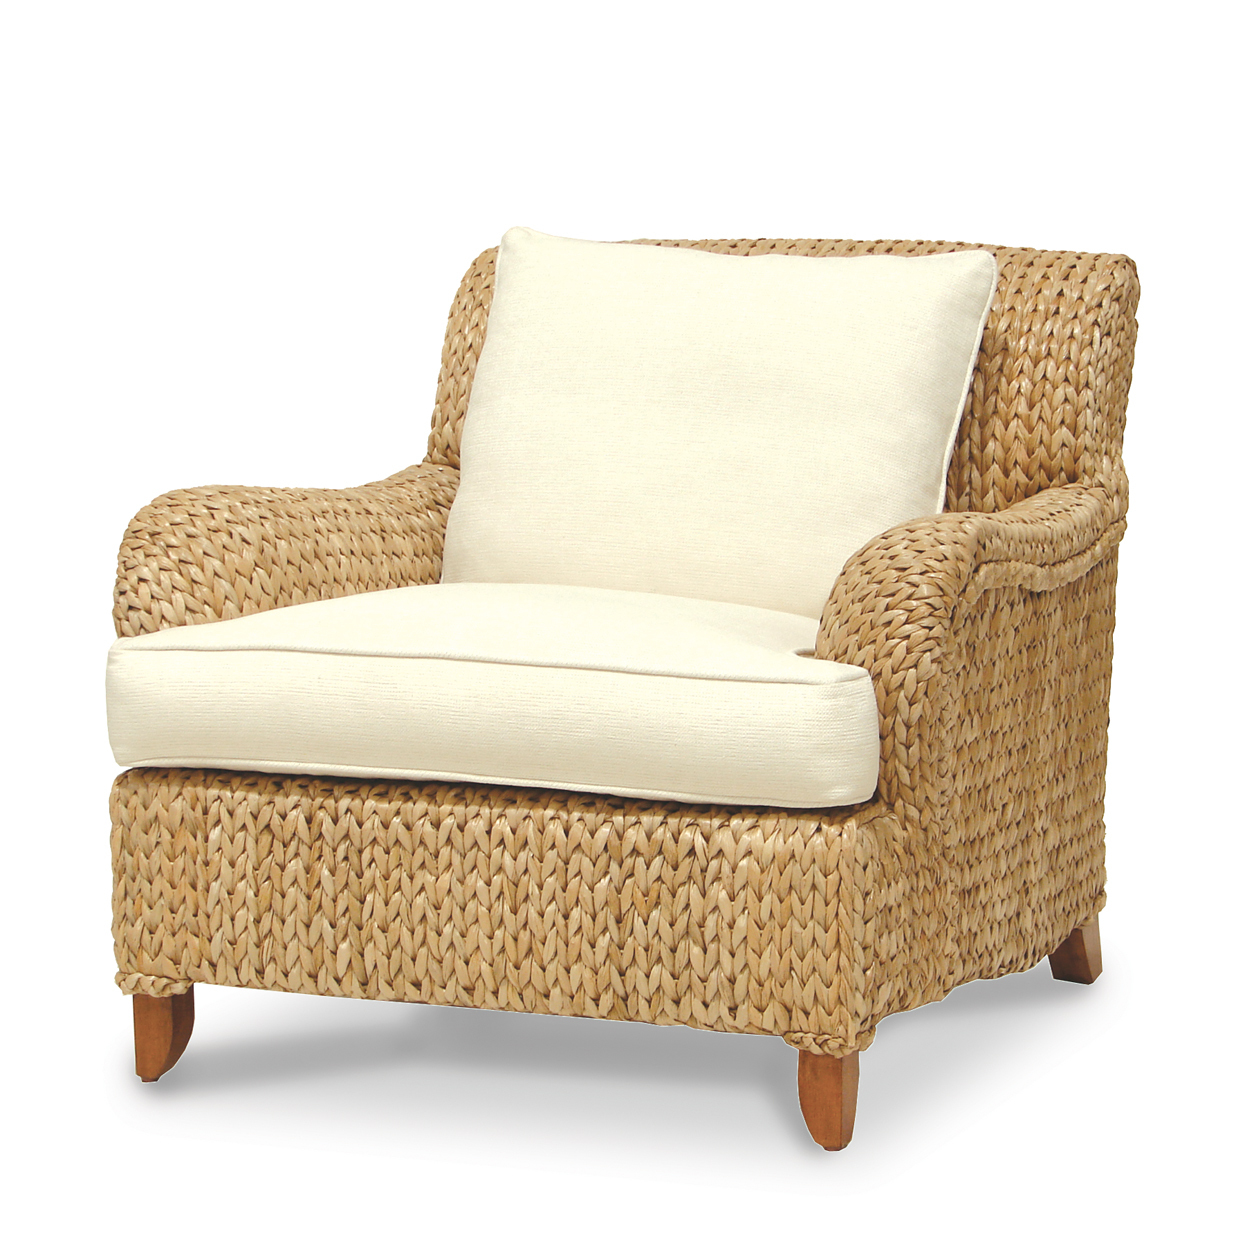 Sweater Weave Seagrass Lounge Chair Www